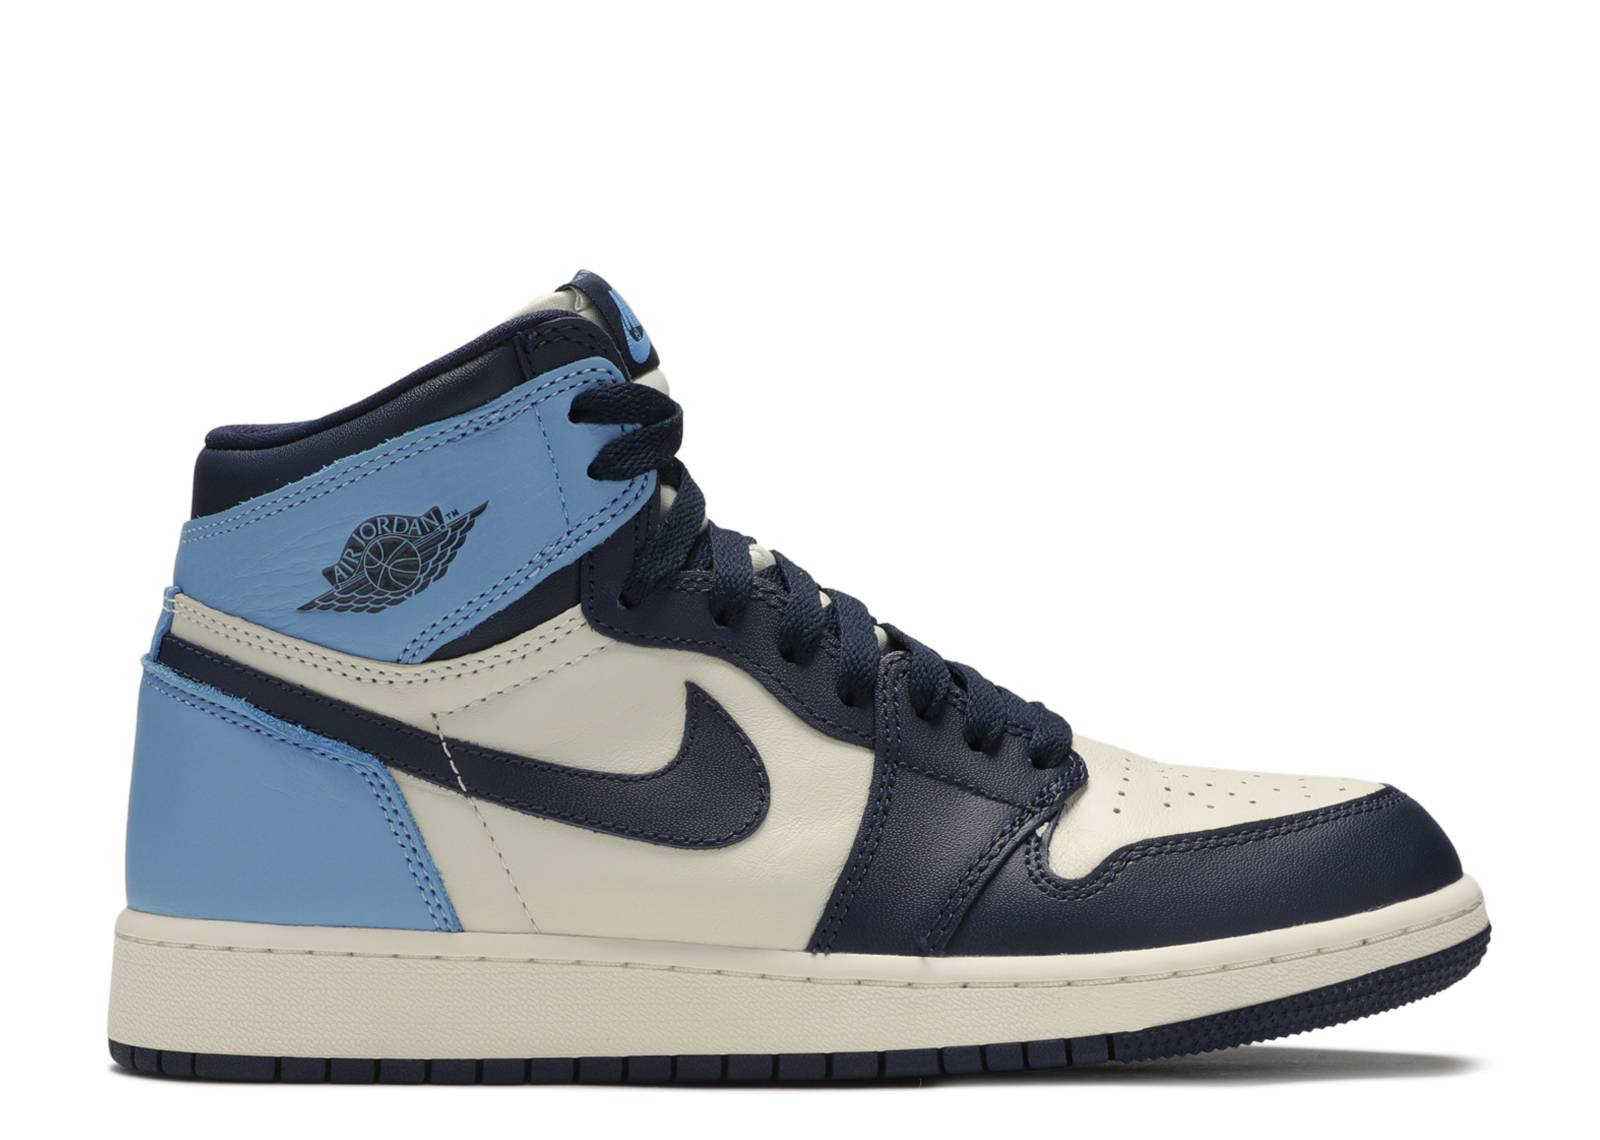 Air Jordan 1 Retro High OG GS 'Obsidian'